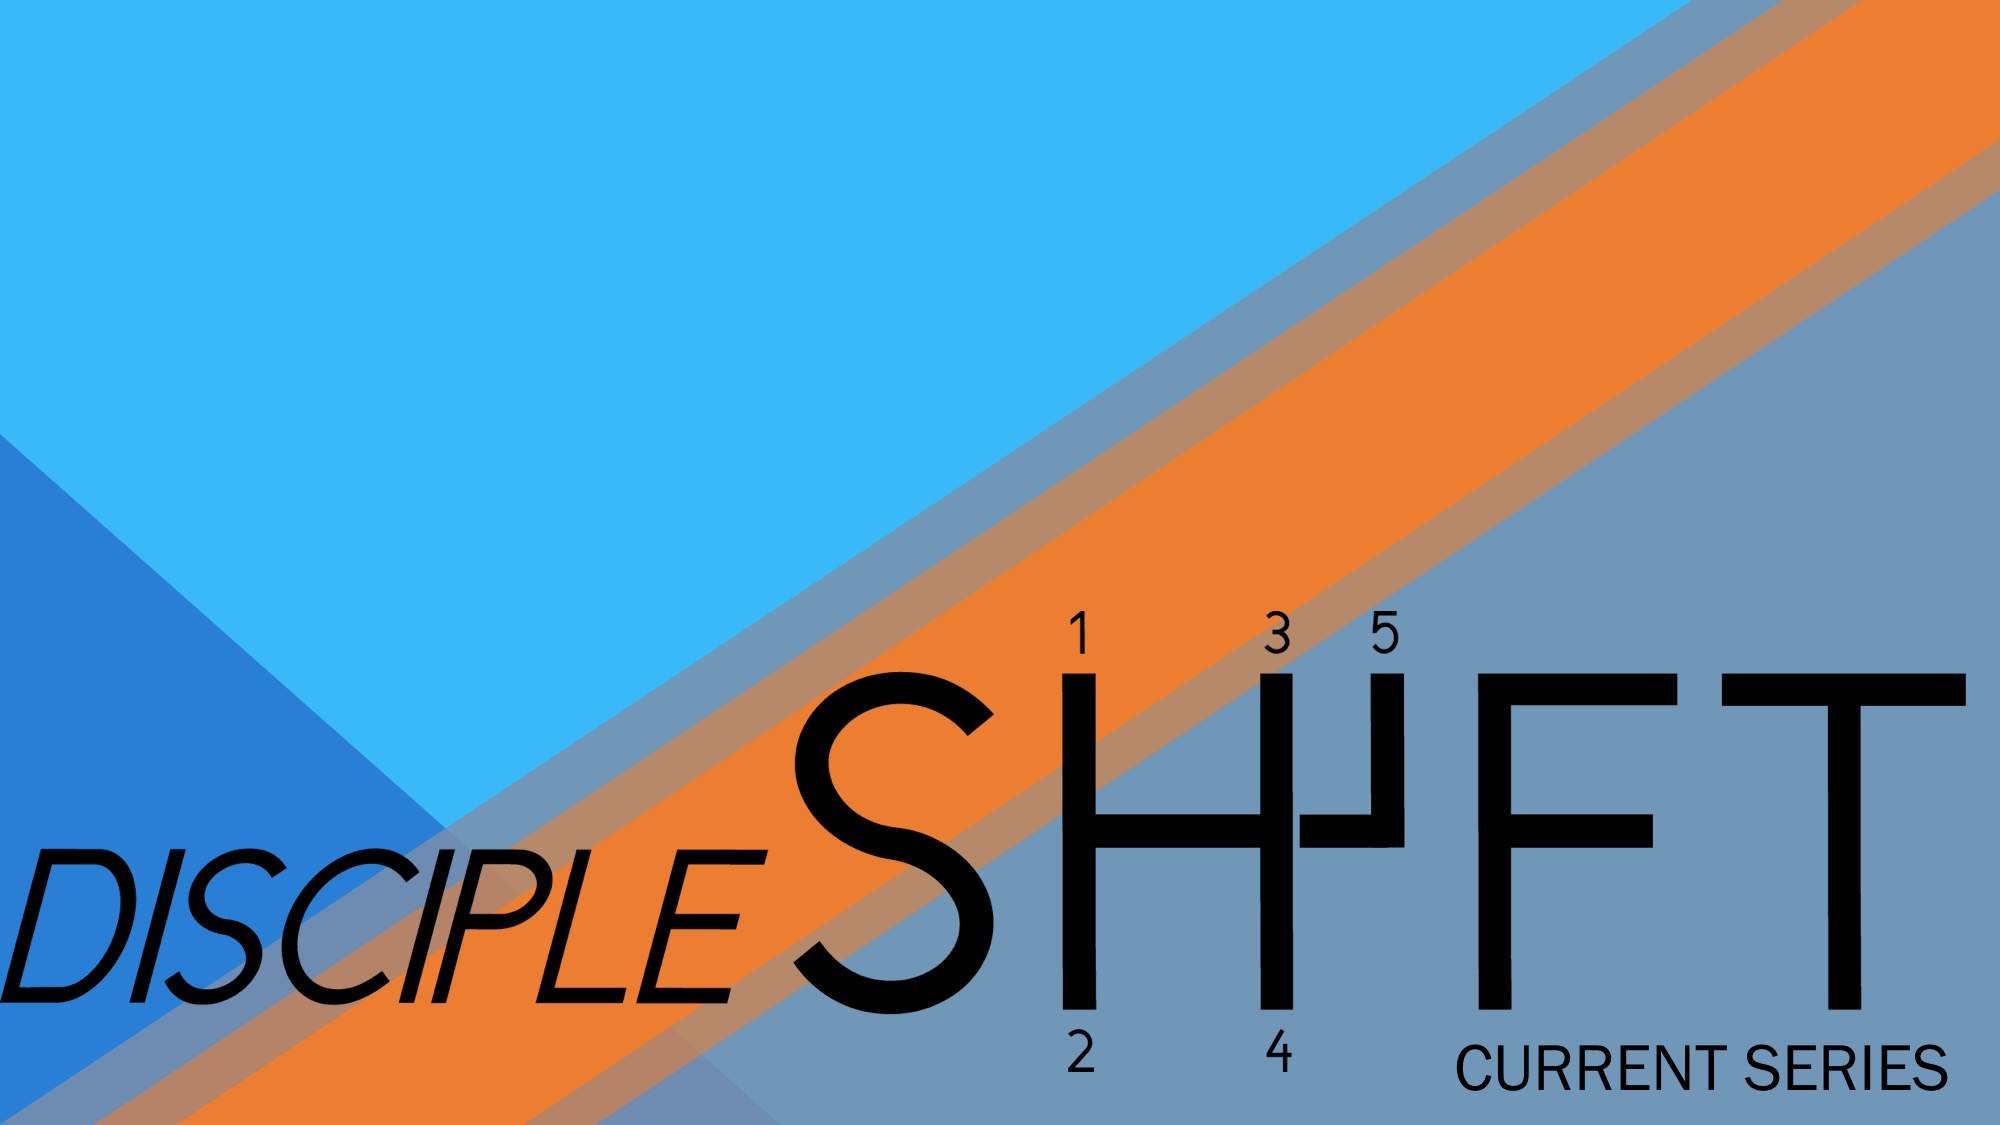 DiscipleShift_Template-2